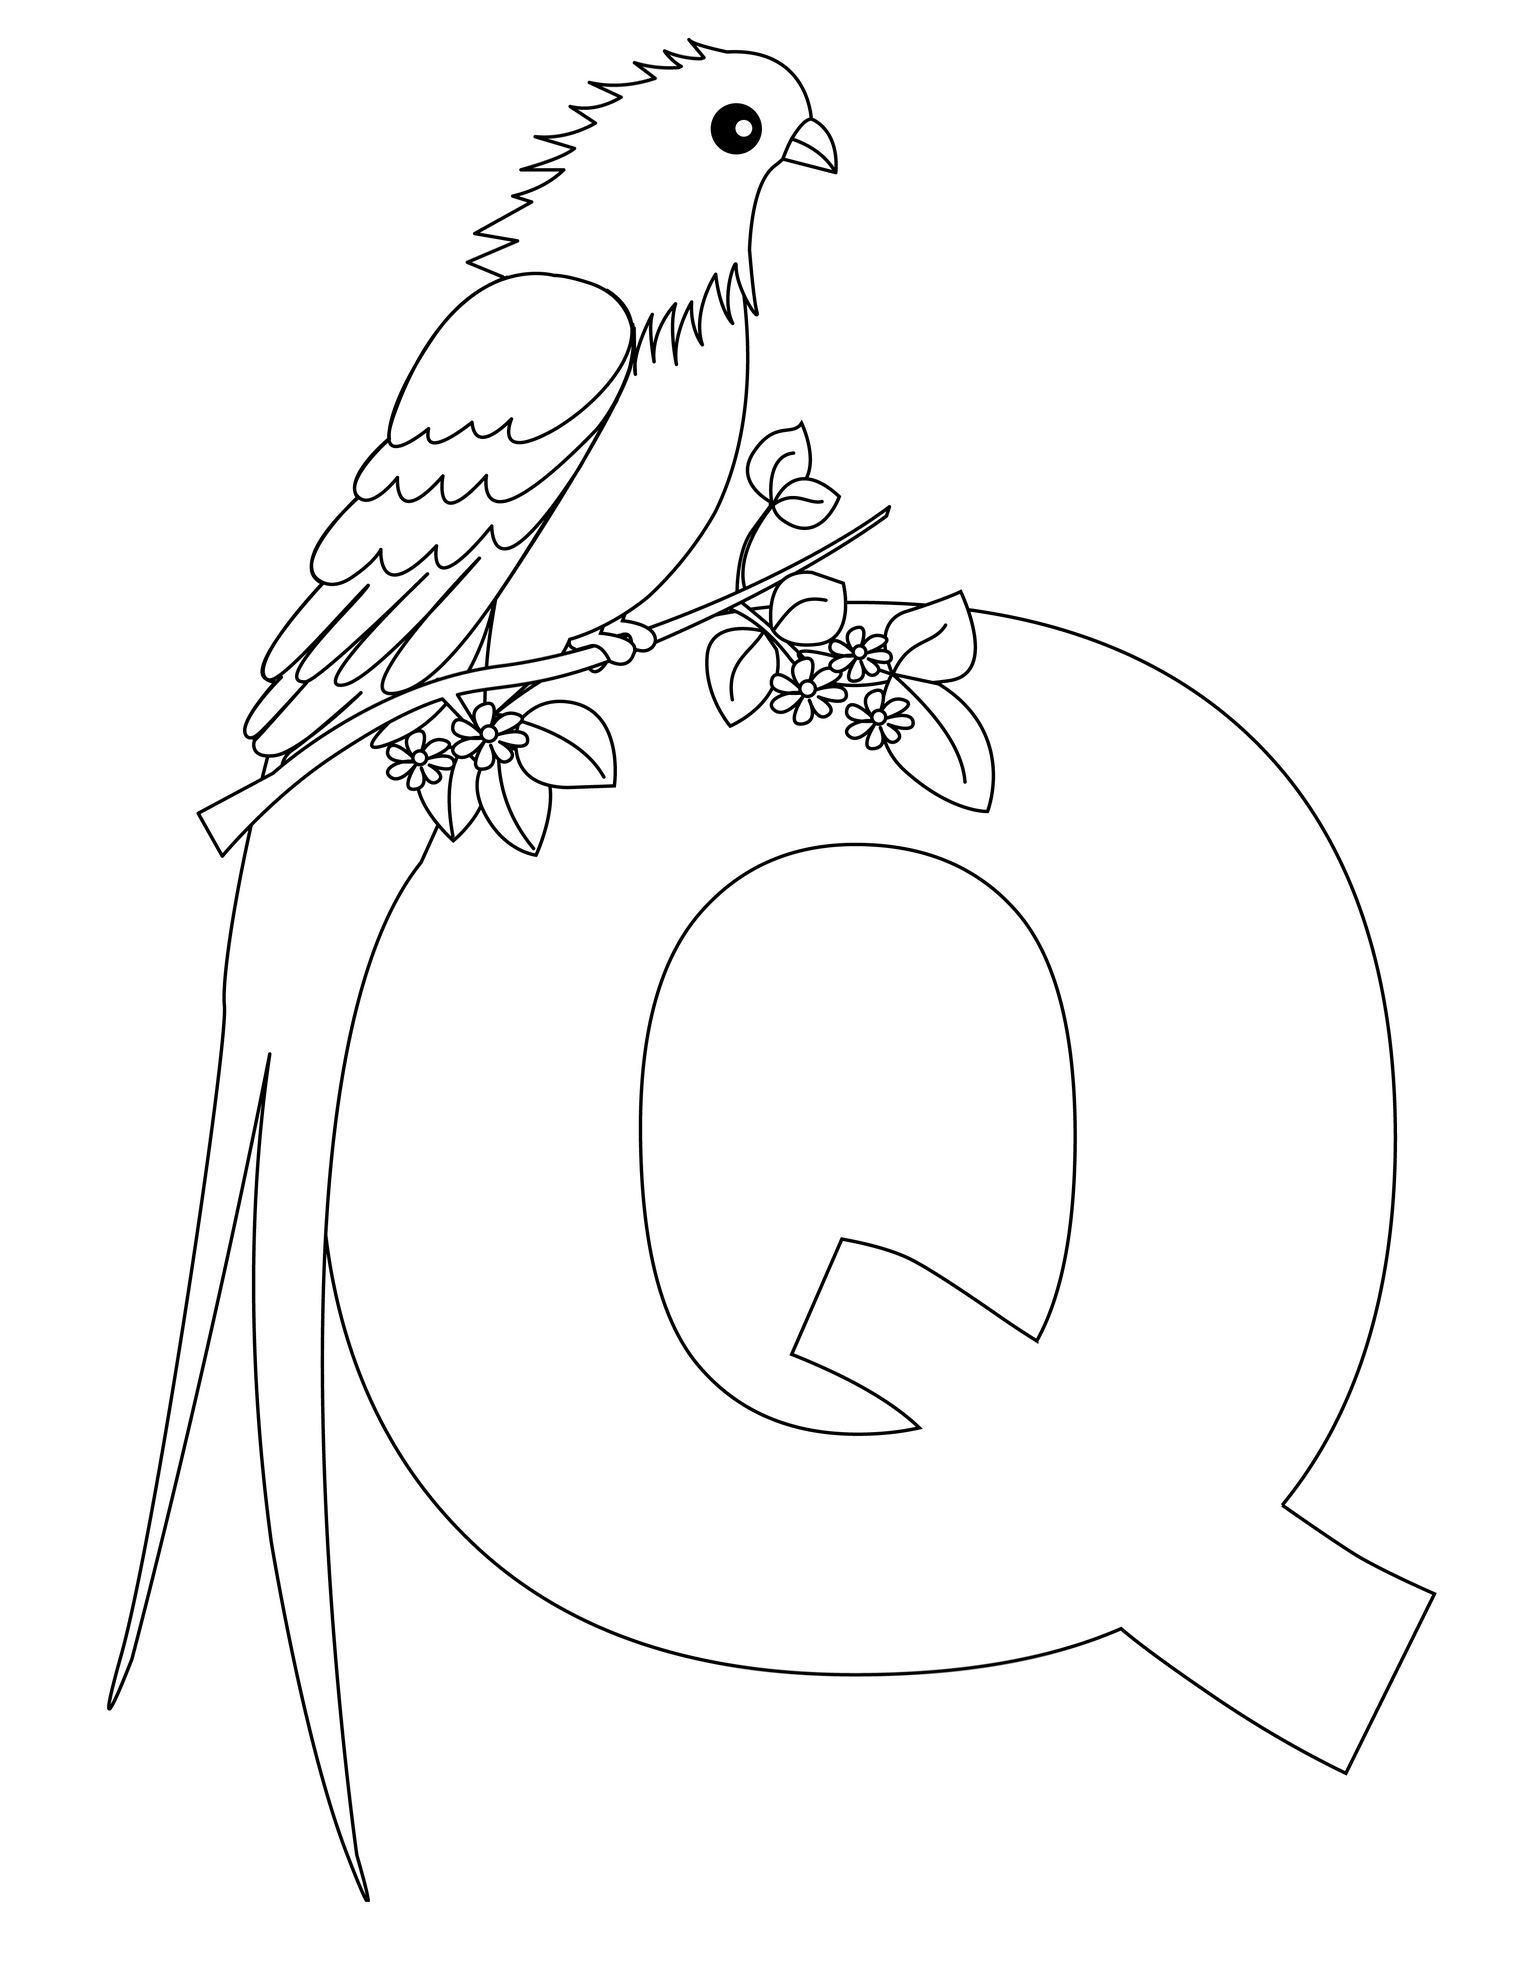 Nice 010 Editor Templates Tall 1 Round Label Template Round 1 Week Calendar Template 10 Commandment Coloring Pages Youthful 10 Hour Schedule Templates Dark11x17 Poster Template Animal Alphabet Letter Q For Queen Whydah! Here\u0027s A Simple ..